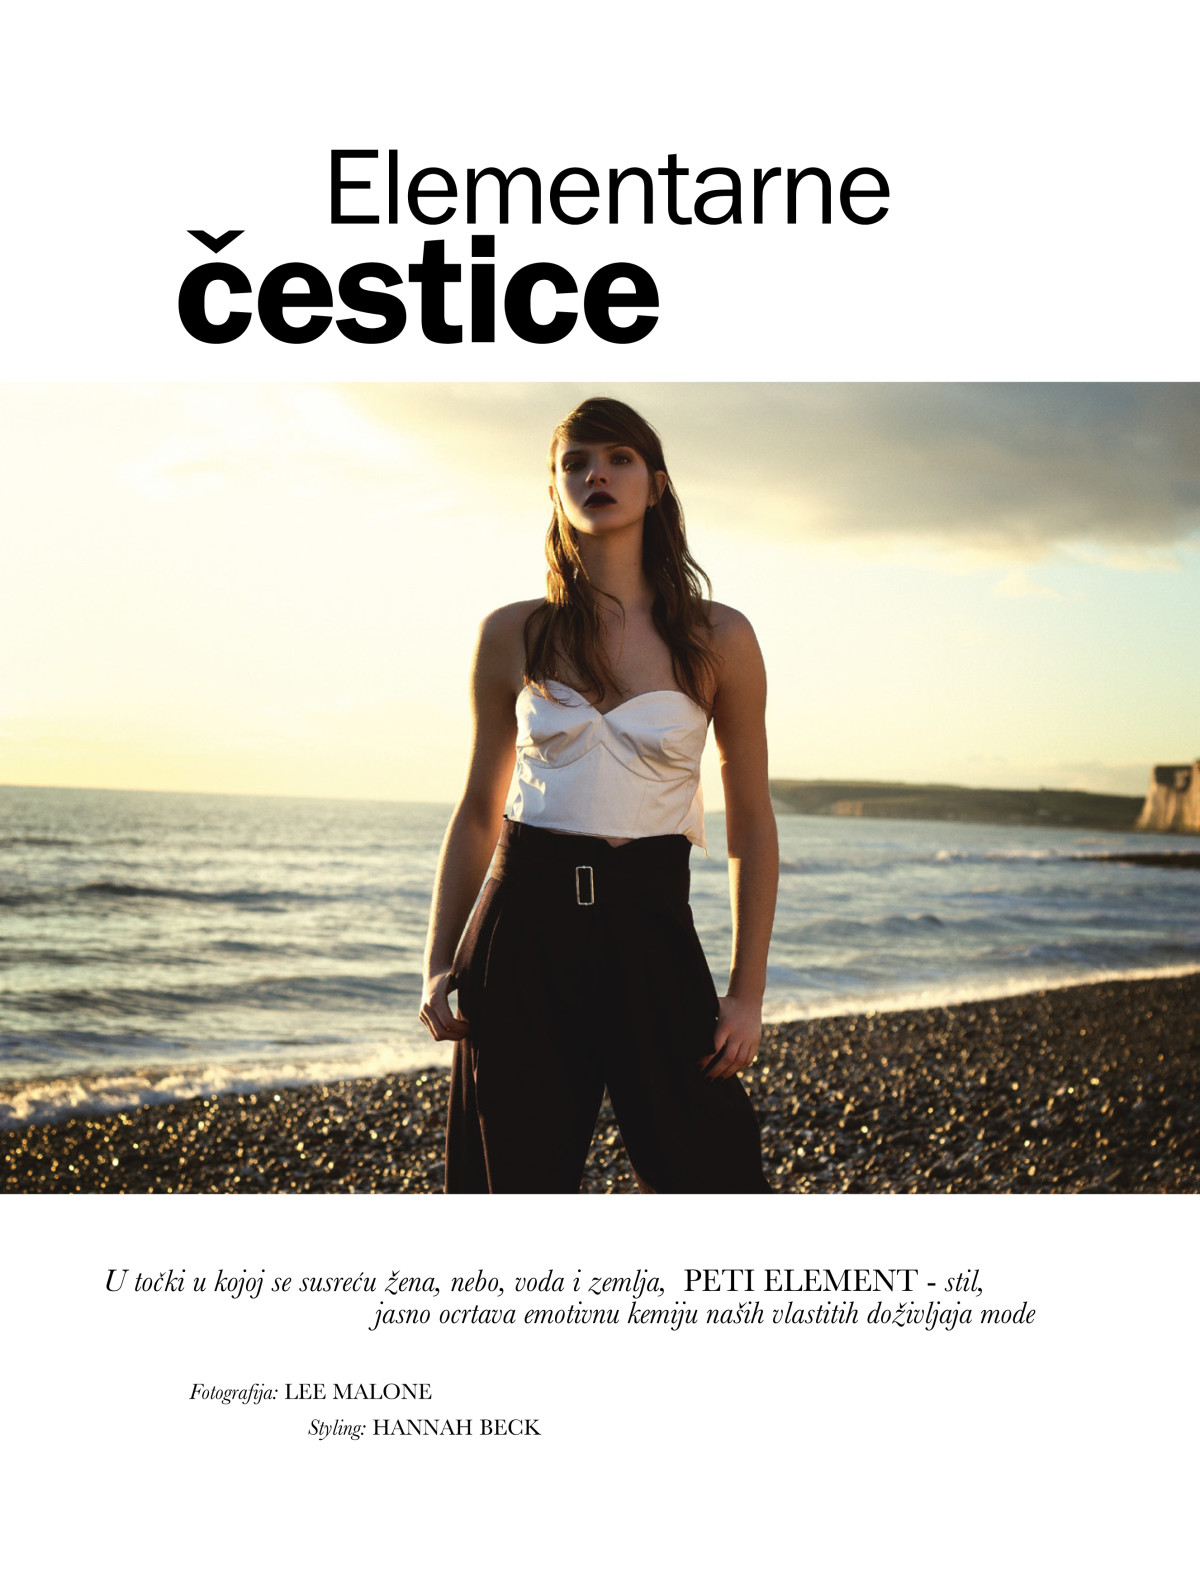 Elle Croatia, Xannie Cater by Lee Malone, Hannah Beck, Claudine Blythman makeup, Stelios Chondros, Beachy Head, Lady with the Lamp, Elle, Sunset, Beach story, white cliffs, red wine lips, statement lip